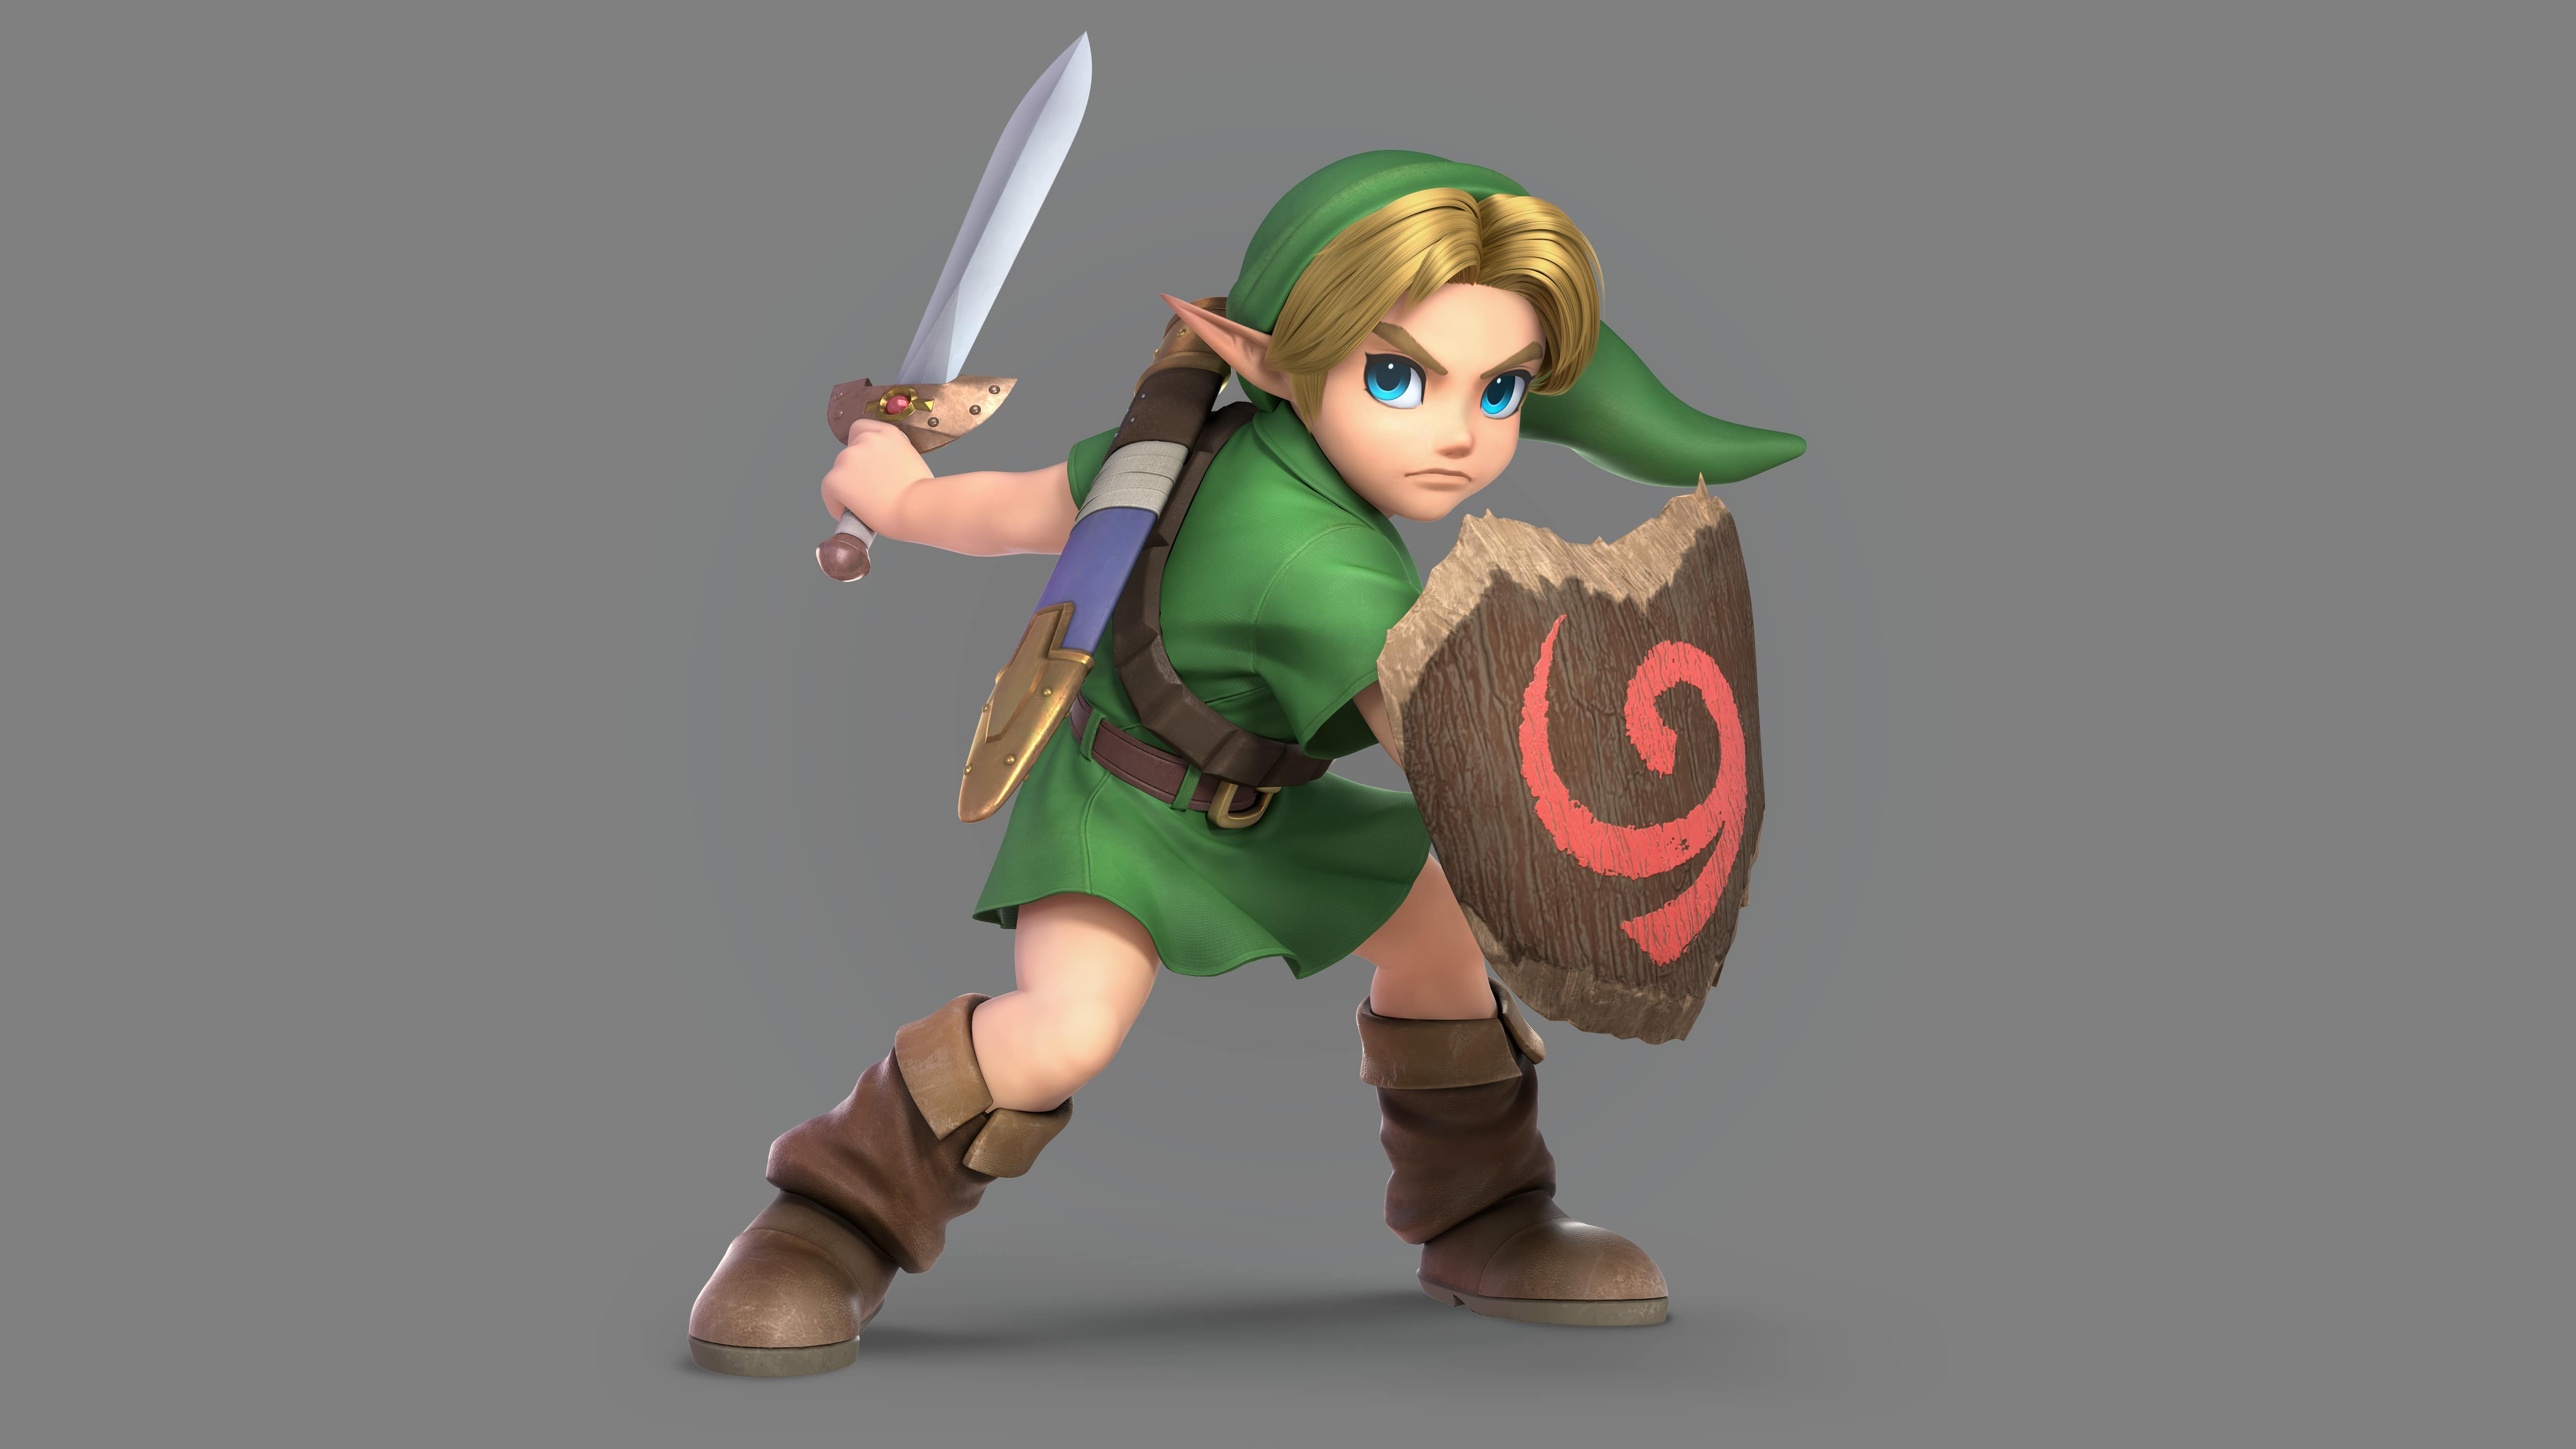 Young Link Super Smash Bros Ultimate 5k #4217 Wallpapers and Free ...